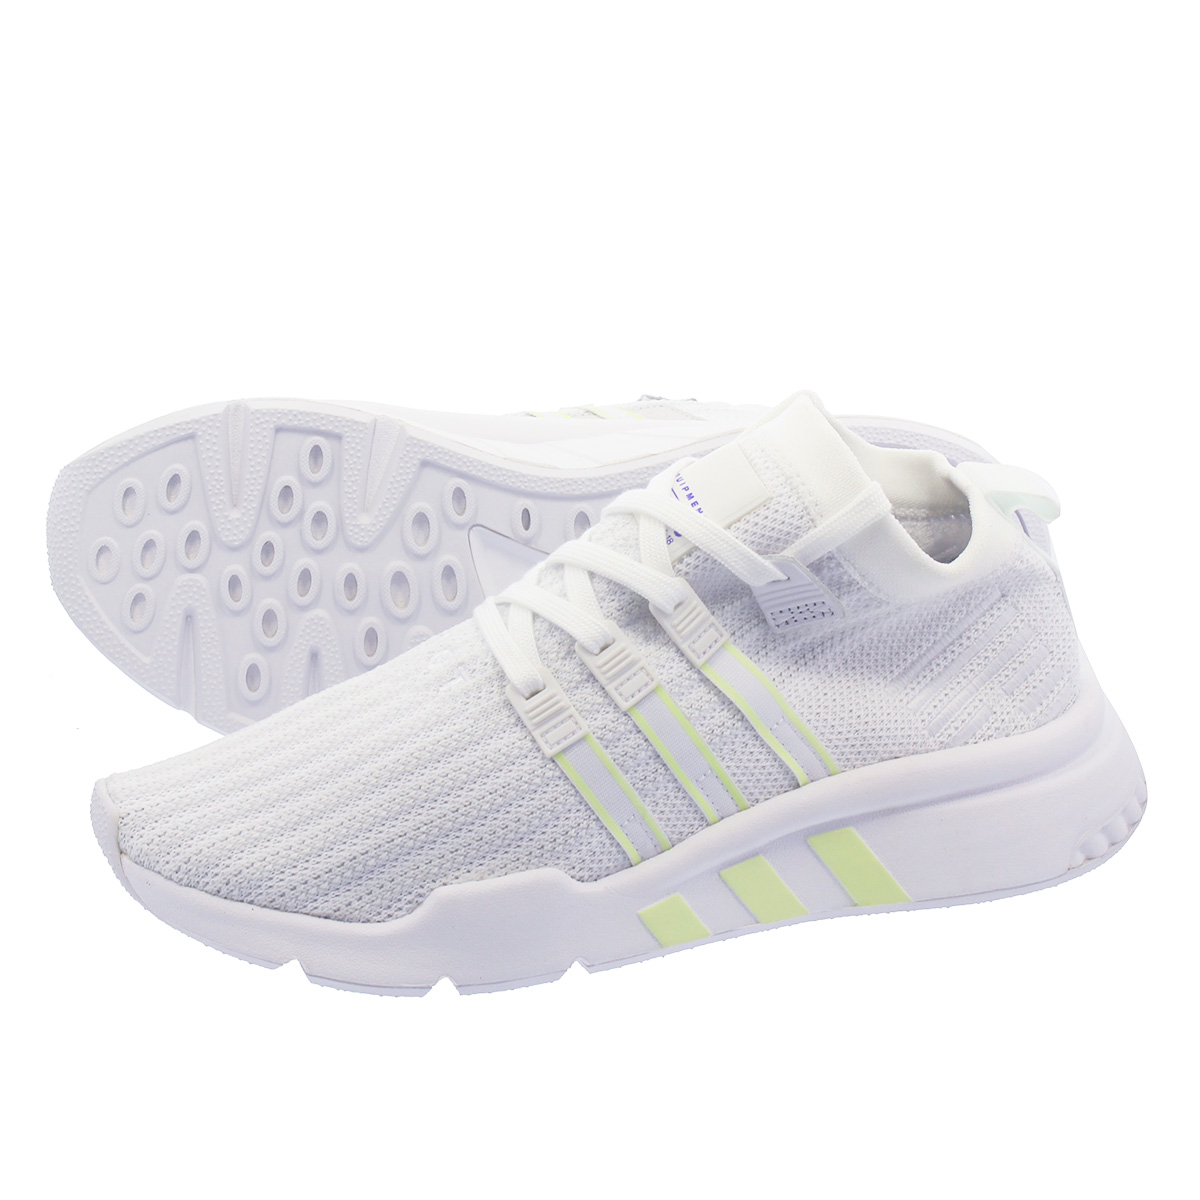 adidas EQT SUPPORT MID ADV PK アディダス EQT サポートミッド ADV PK RUNNING WHITE/CRYSTAL WHITE/ENERGY INK b37455